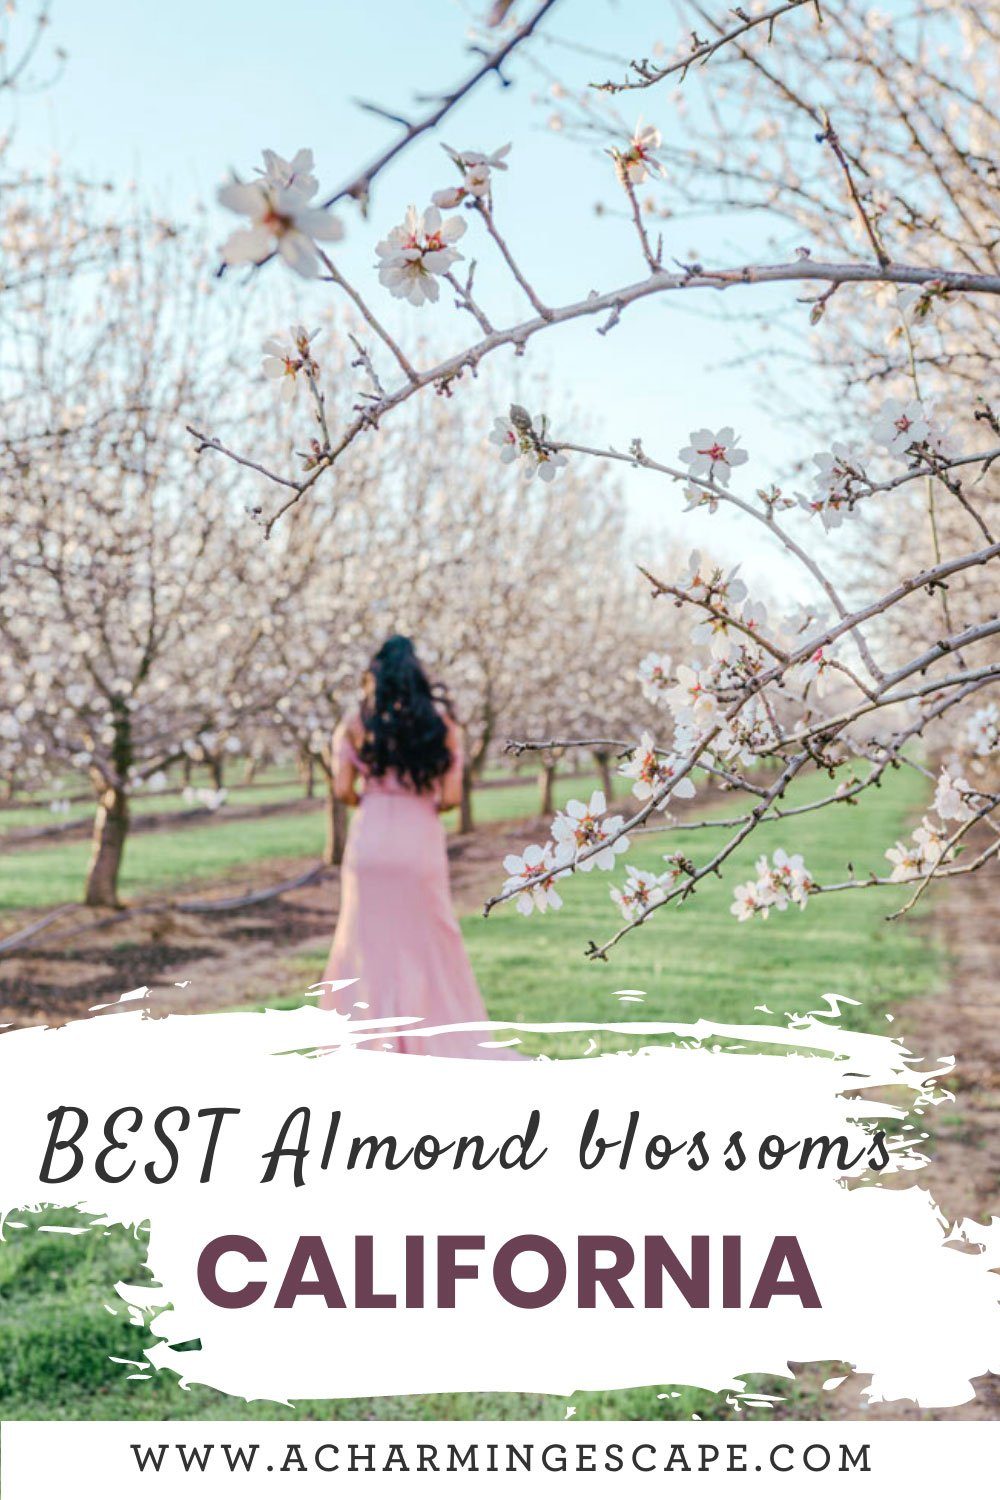 5 Best Almond blossoms in California